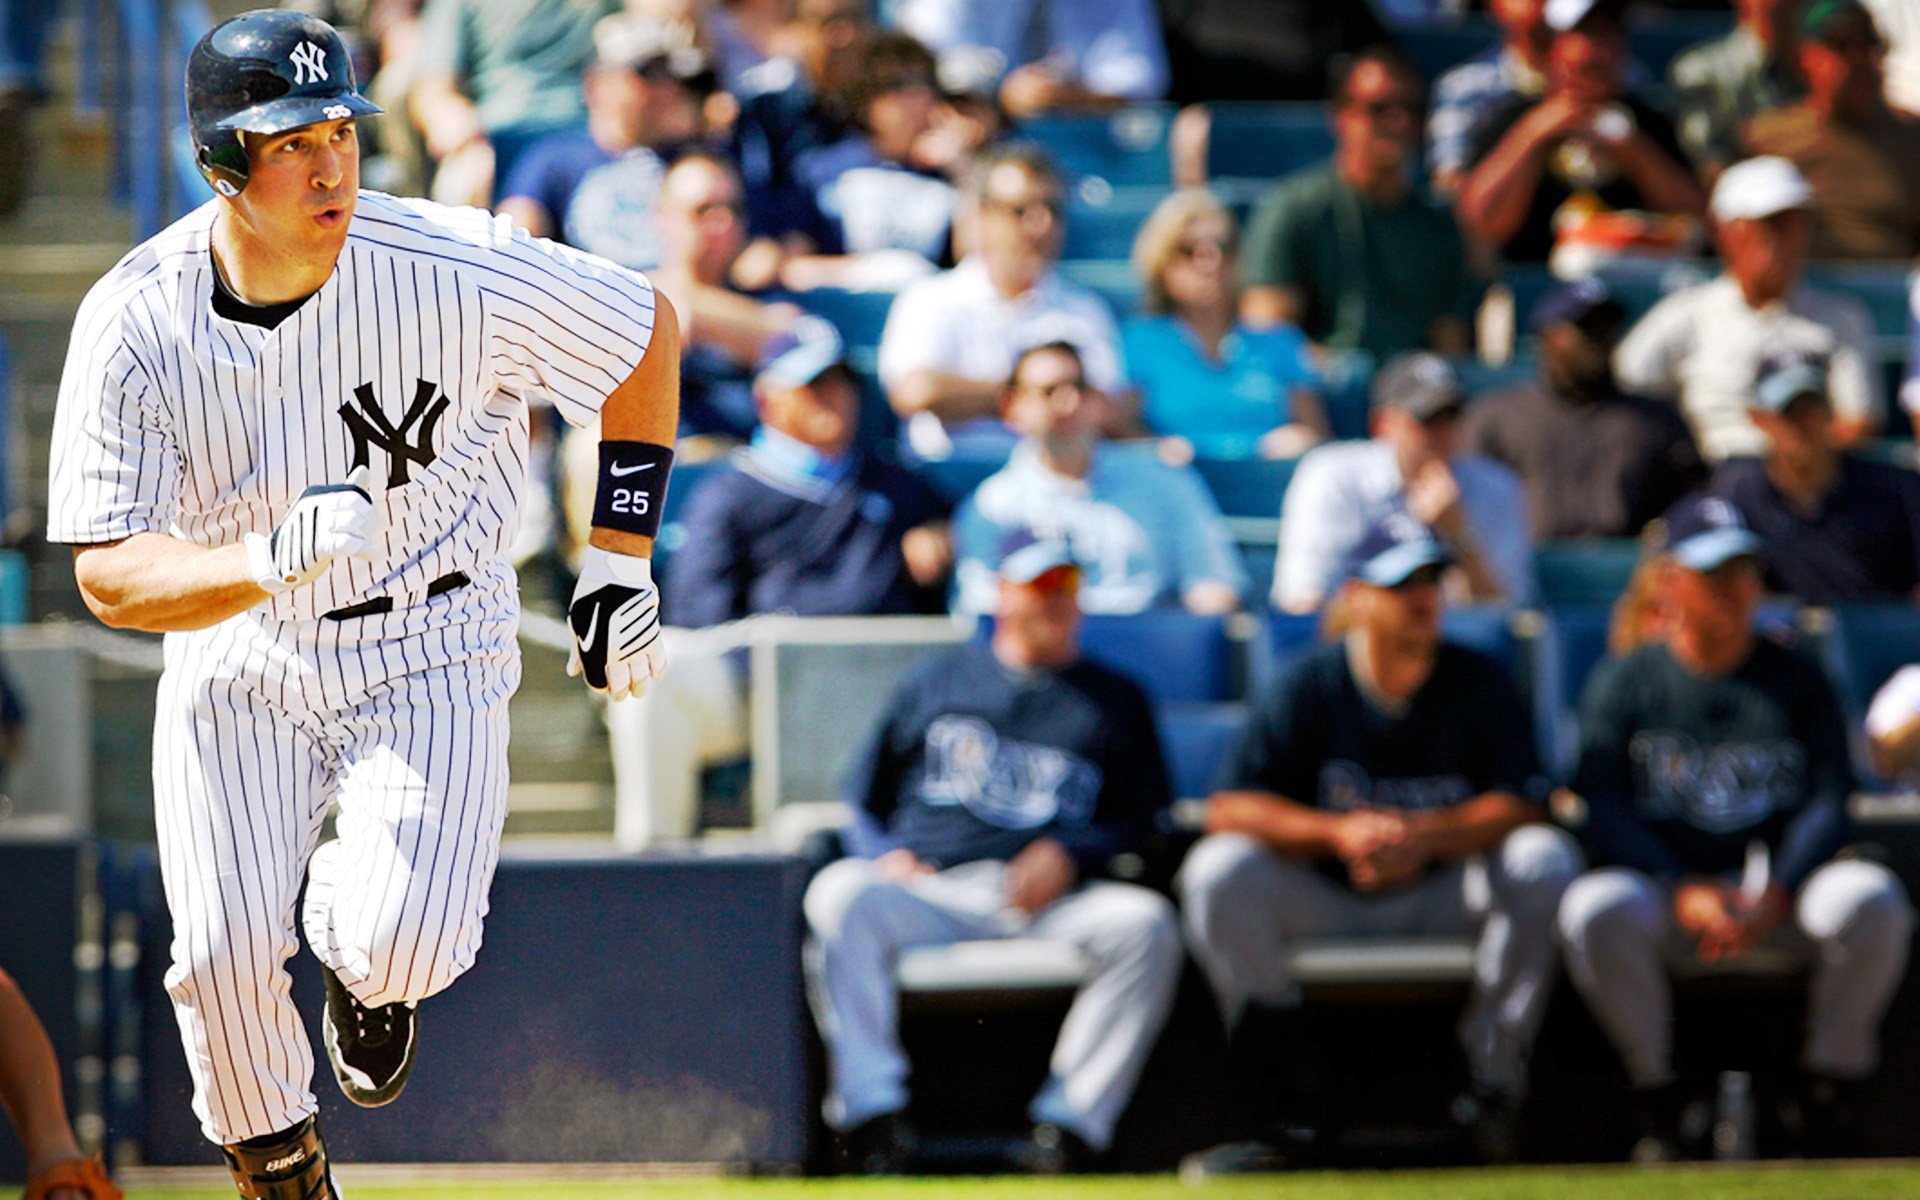 new york yankees essay Free essay: ever since they became an official organization in 1903, the new york yankees have established themselves as one of the world's top sport.